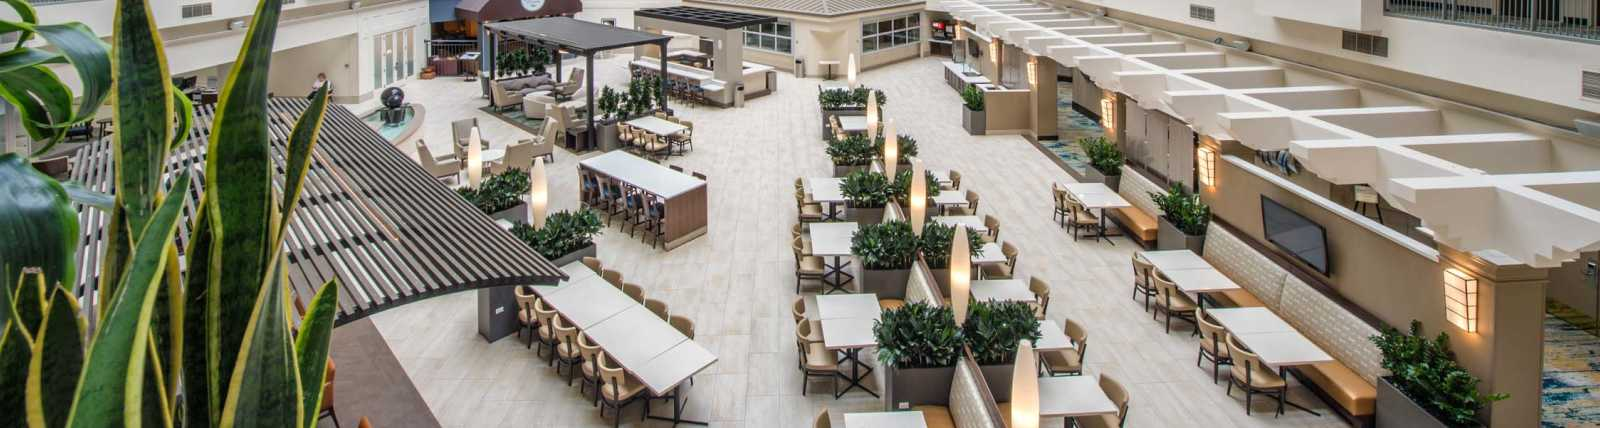 Newly transformed atrium